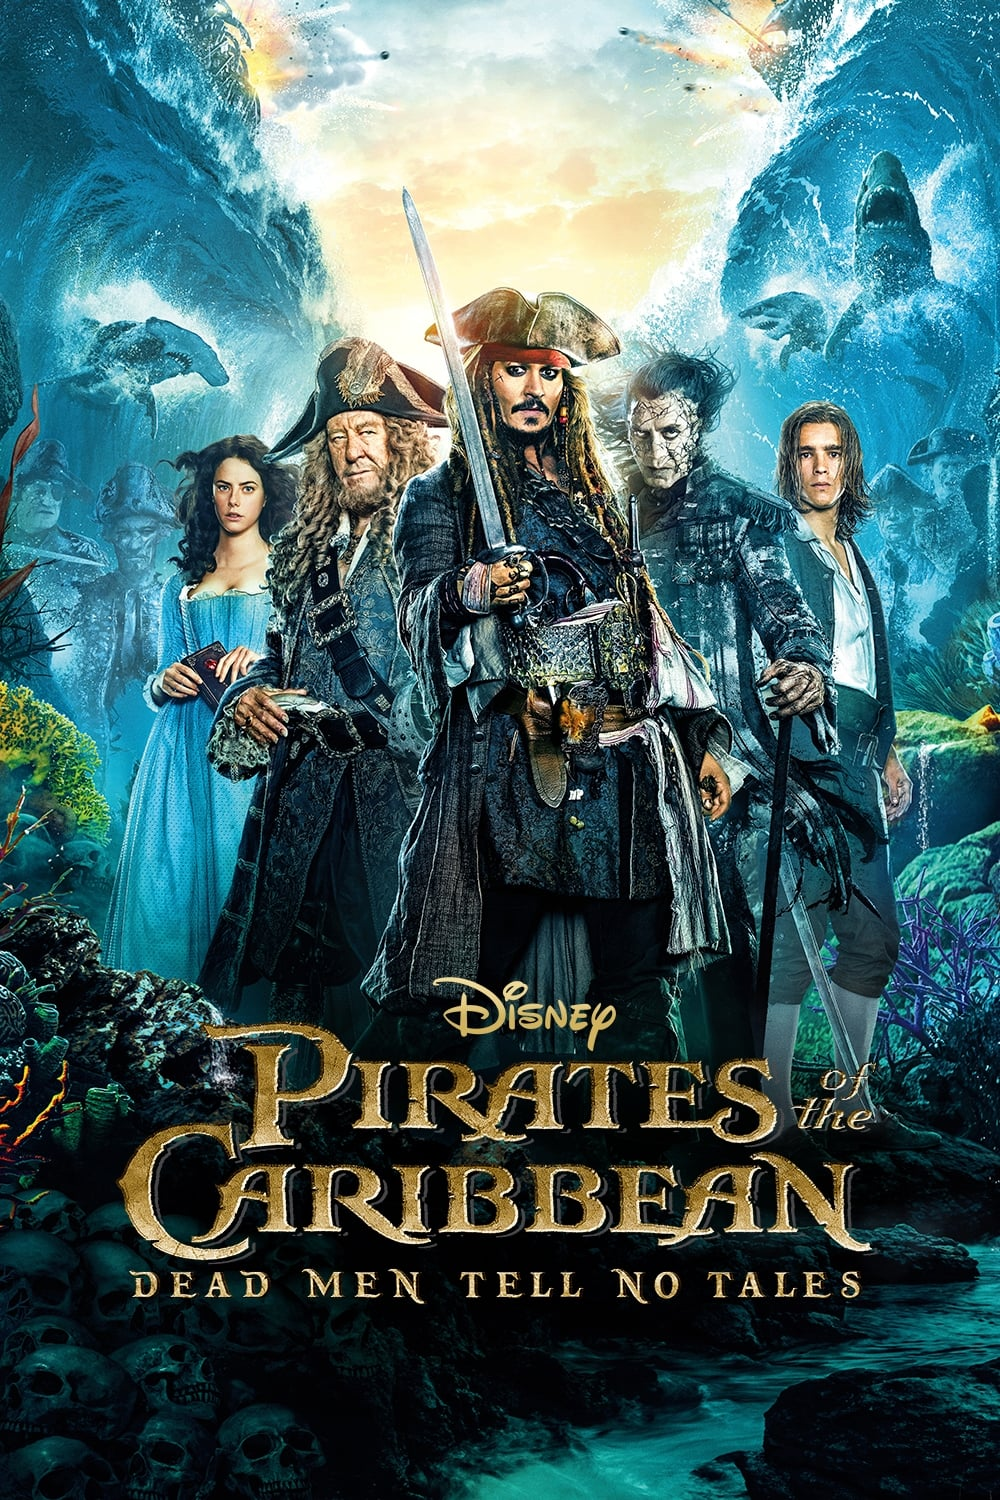 Pirates of the Caribbean: Dead Men Tell No Tales Poster